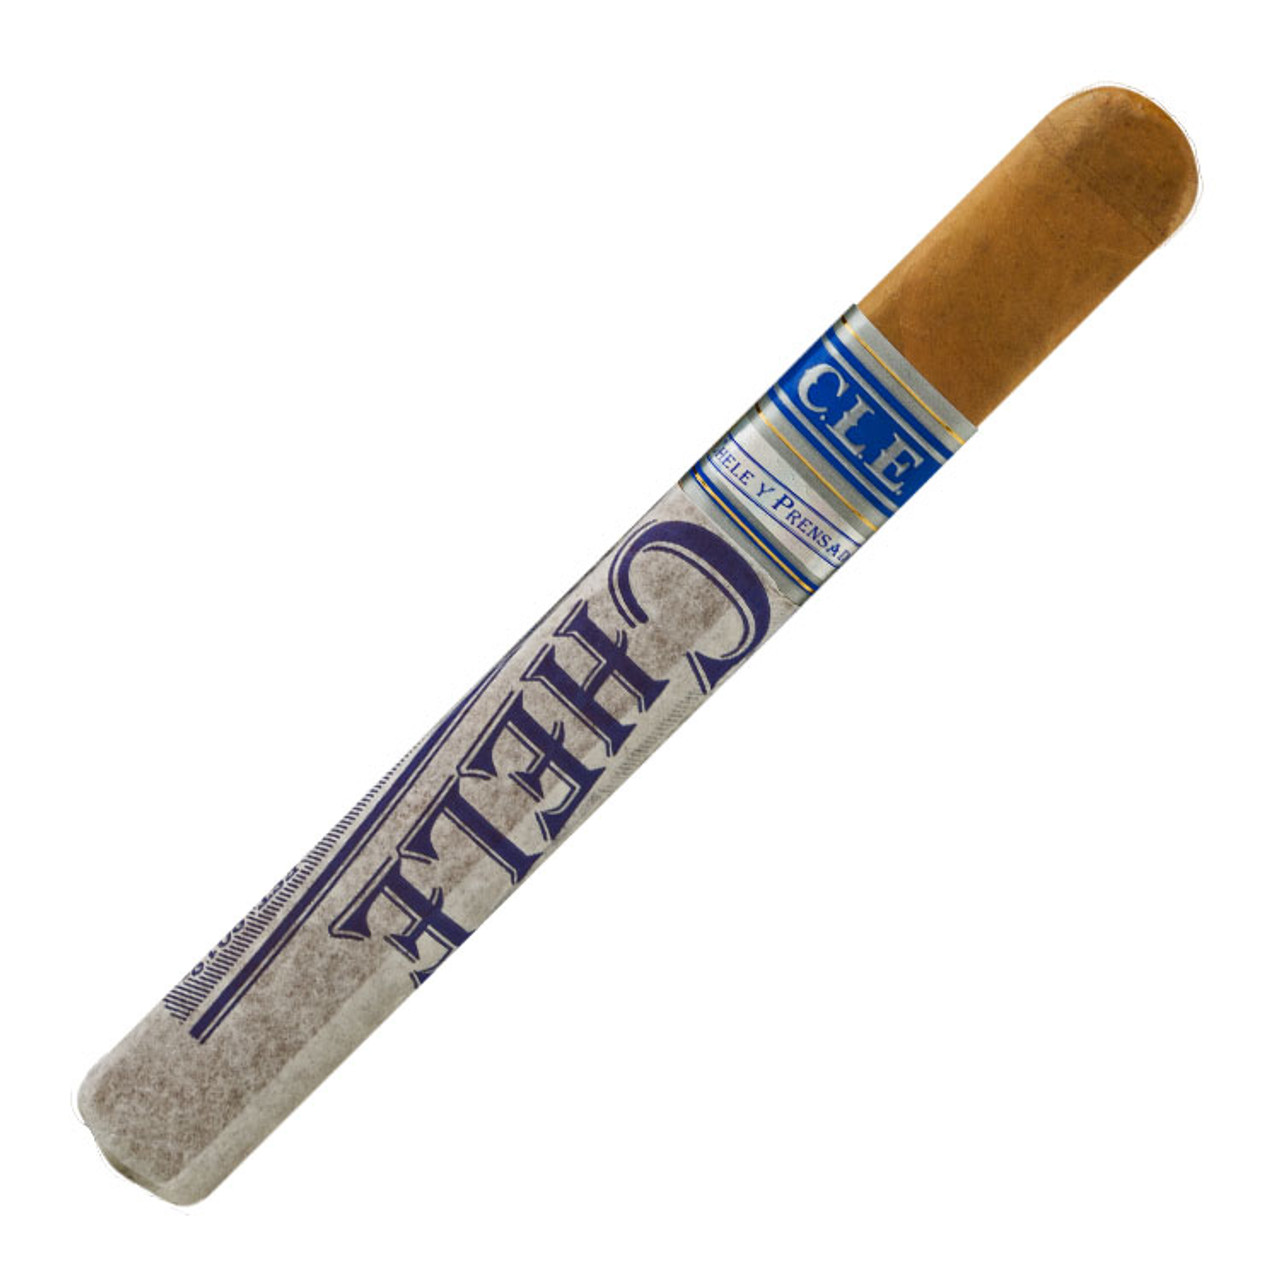 CLE Chele No. 646 Cigars - 6 x 46 (Box of 25)